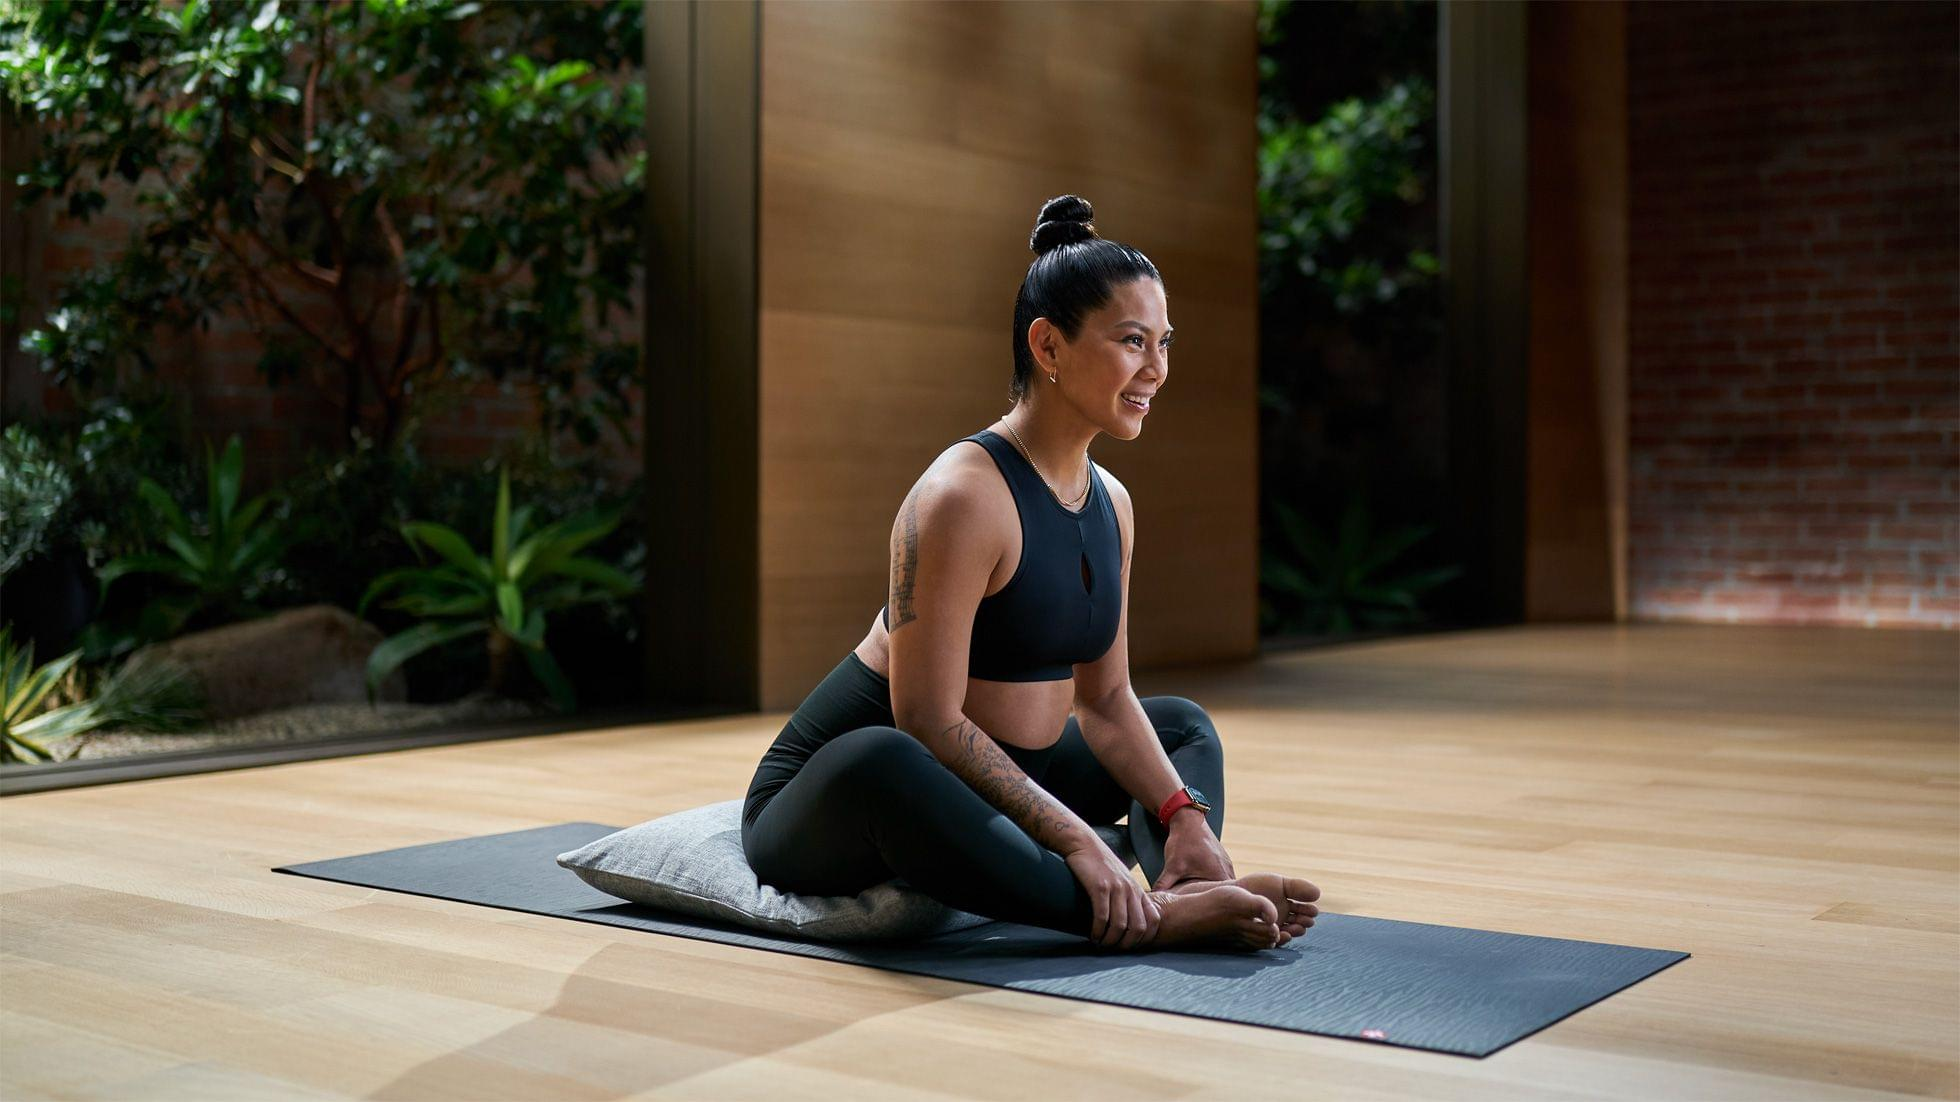 photo of Apple Expands Fitness+ Offerings with New Classes Designed for Pregnancy and Older Adults, New Trainers, and Time to… image